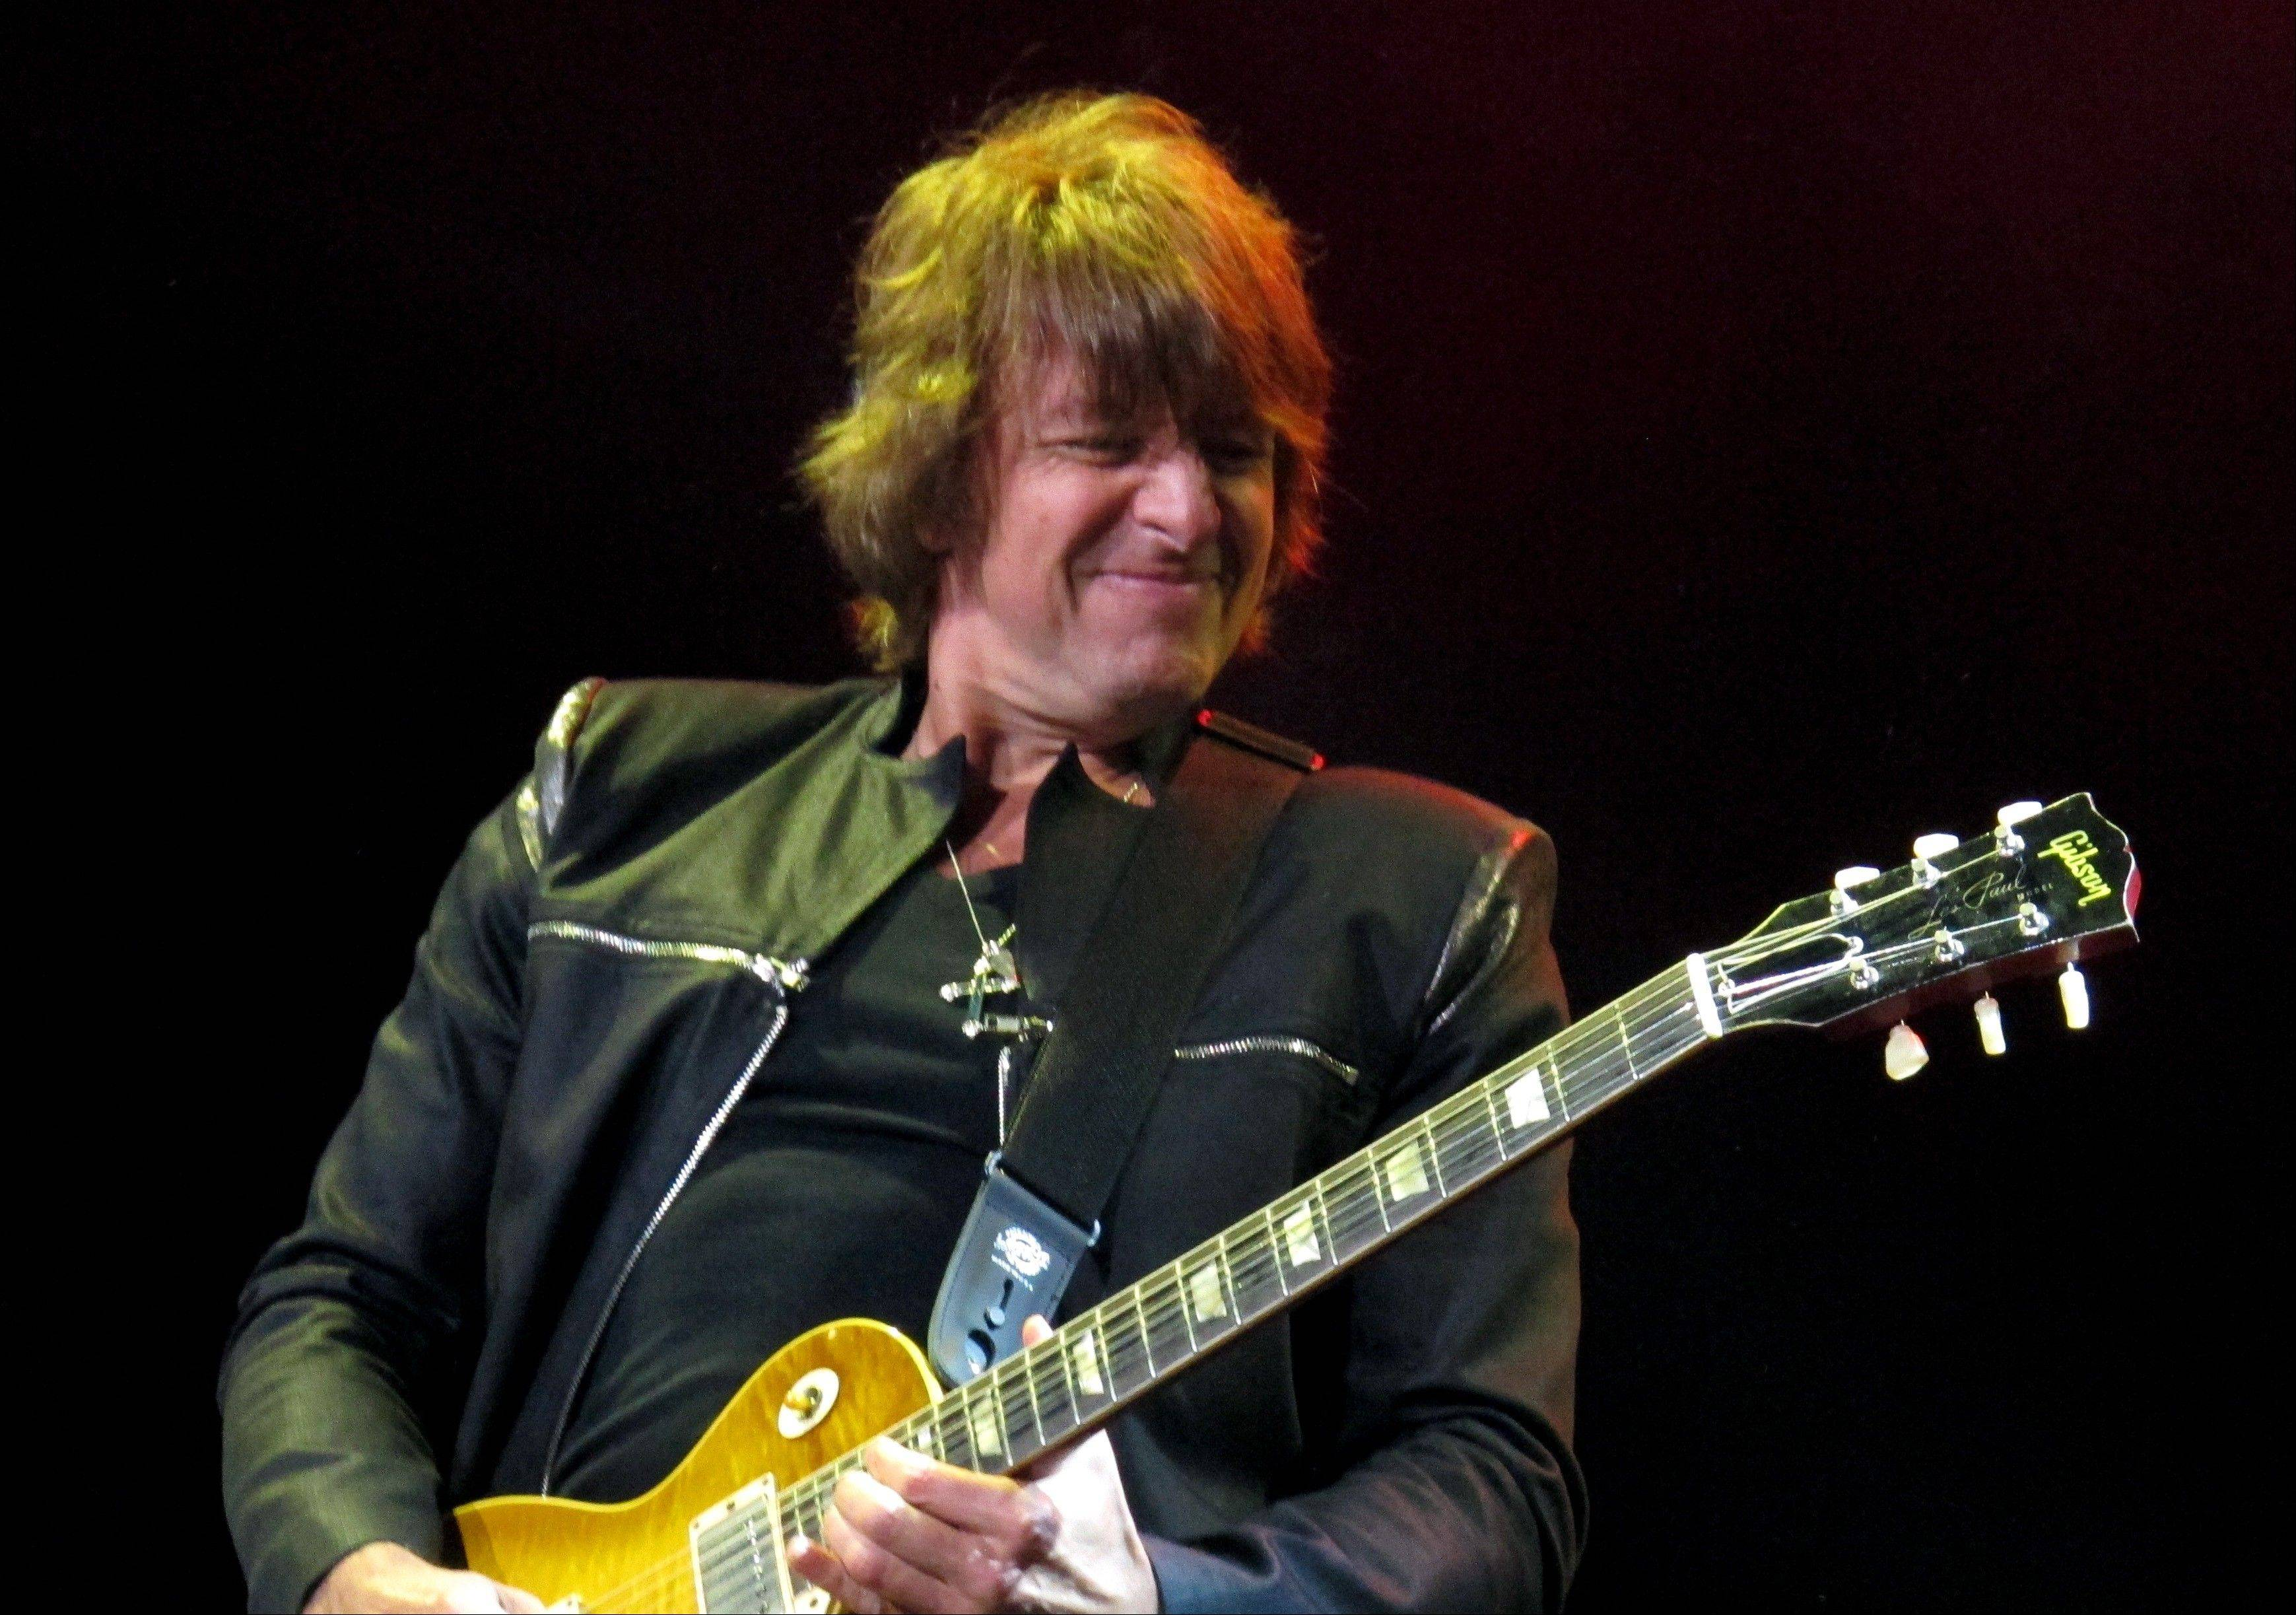 Richie Sambora will not be performing with Bon Jovi during the current leg of the band�s Because We Can tour. The band on its website cited �personal issues.� No other information was given.